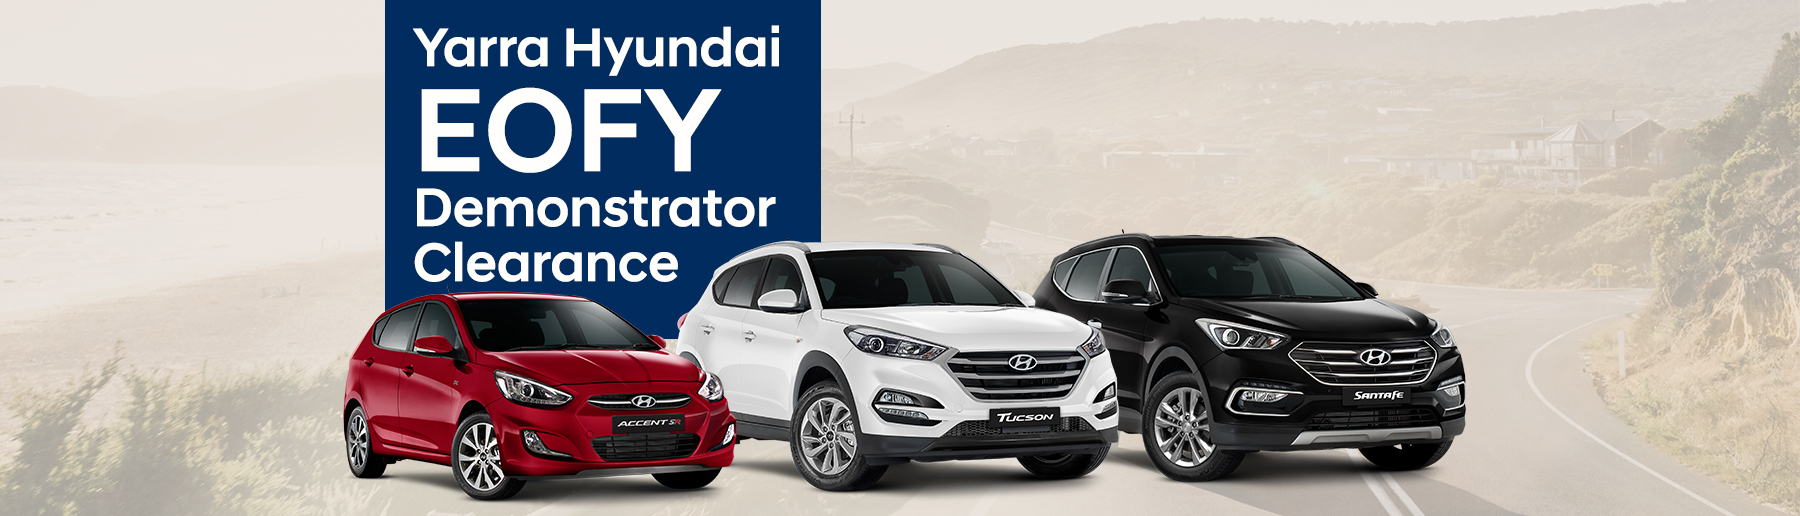 End of Financial Year Demo Sale at Yarra Hyundai